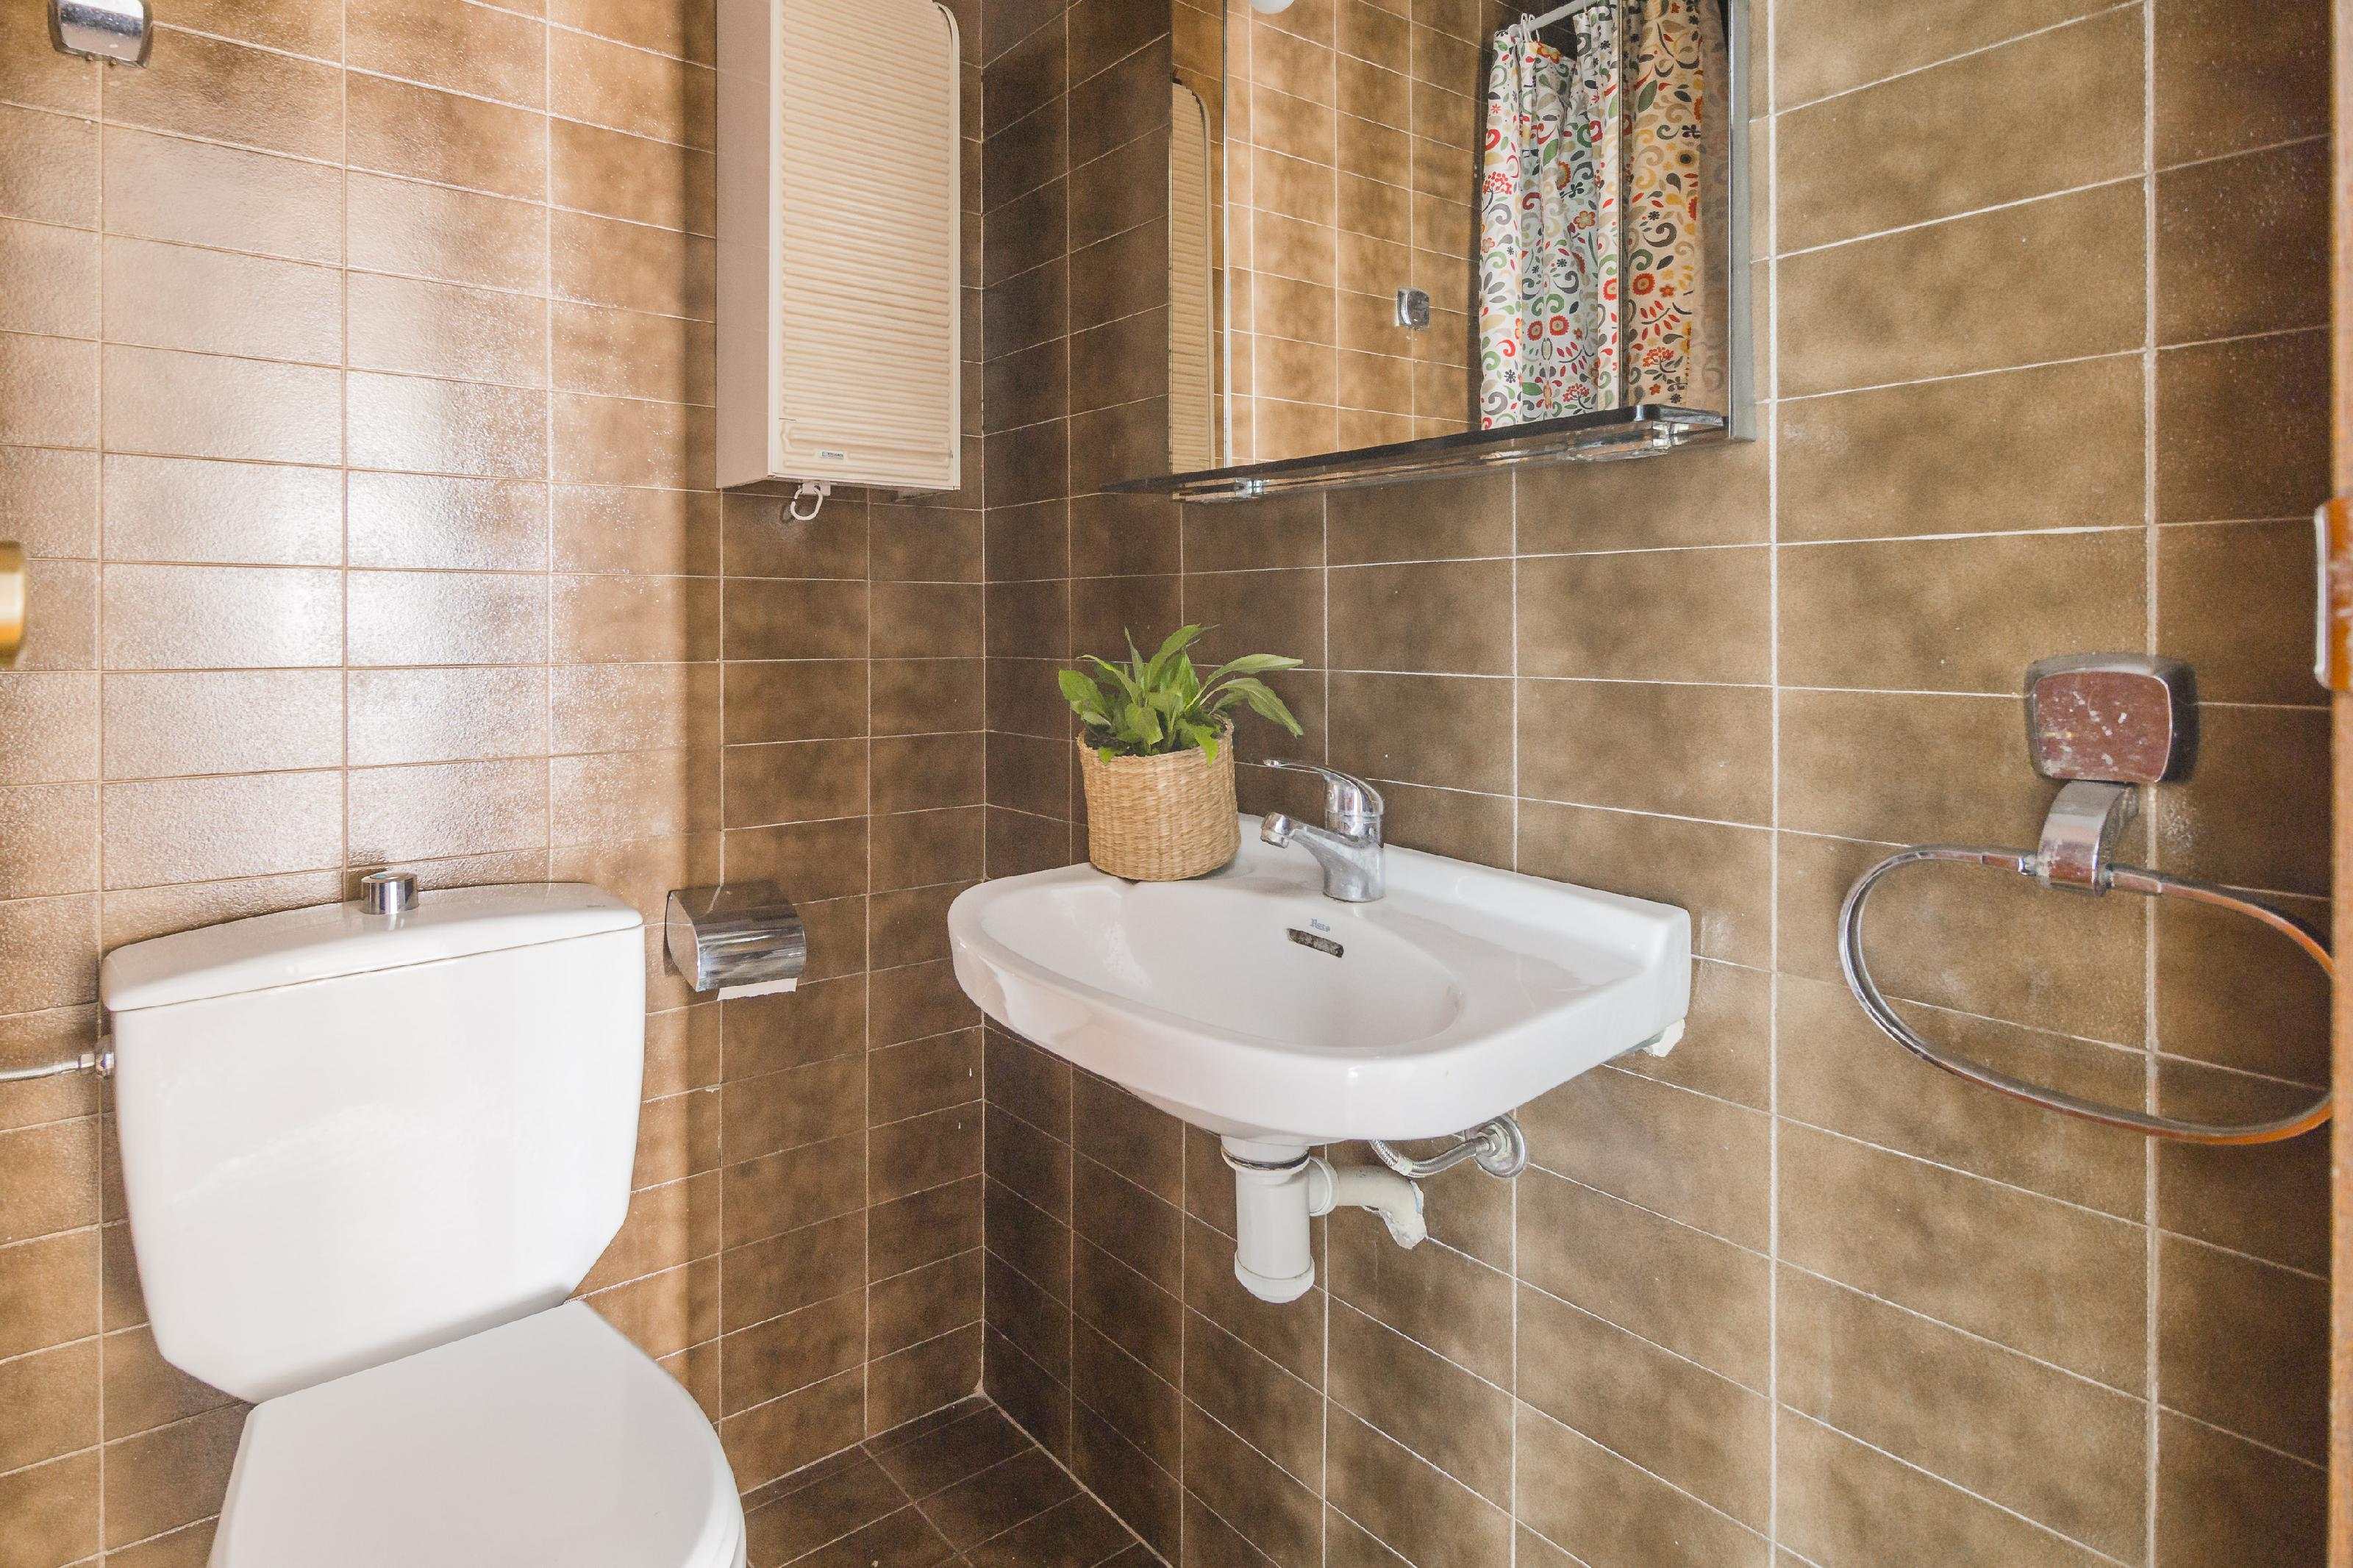 239426 Flat for sale in Les Corts, Les Corts 20